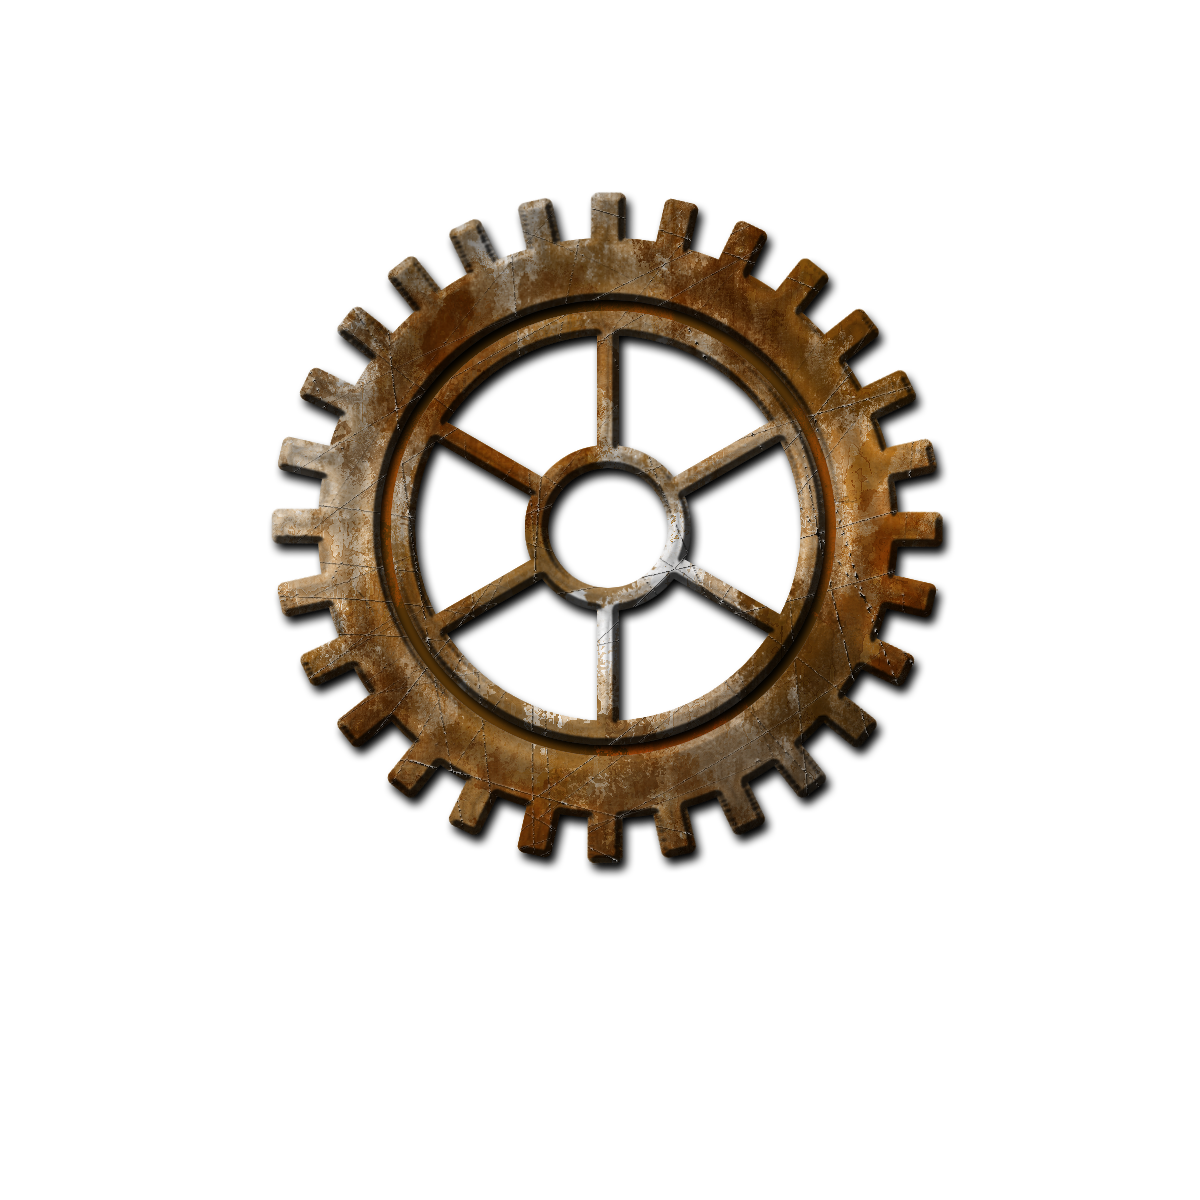 svg free library Steampunk Gear Transparent Background